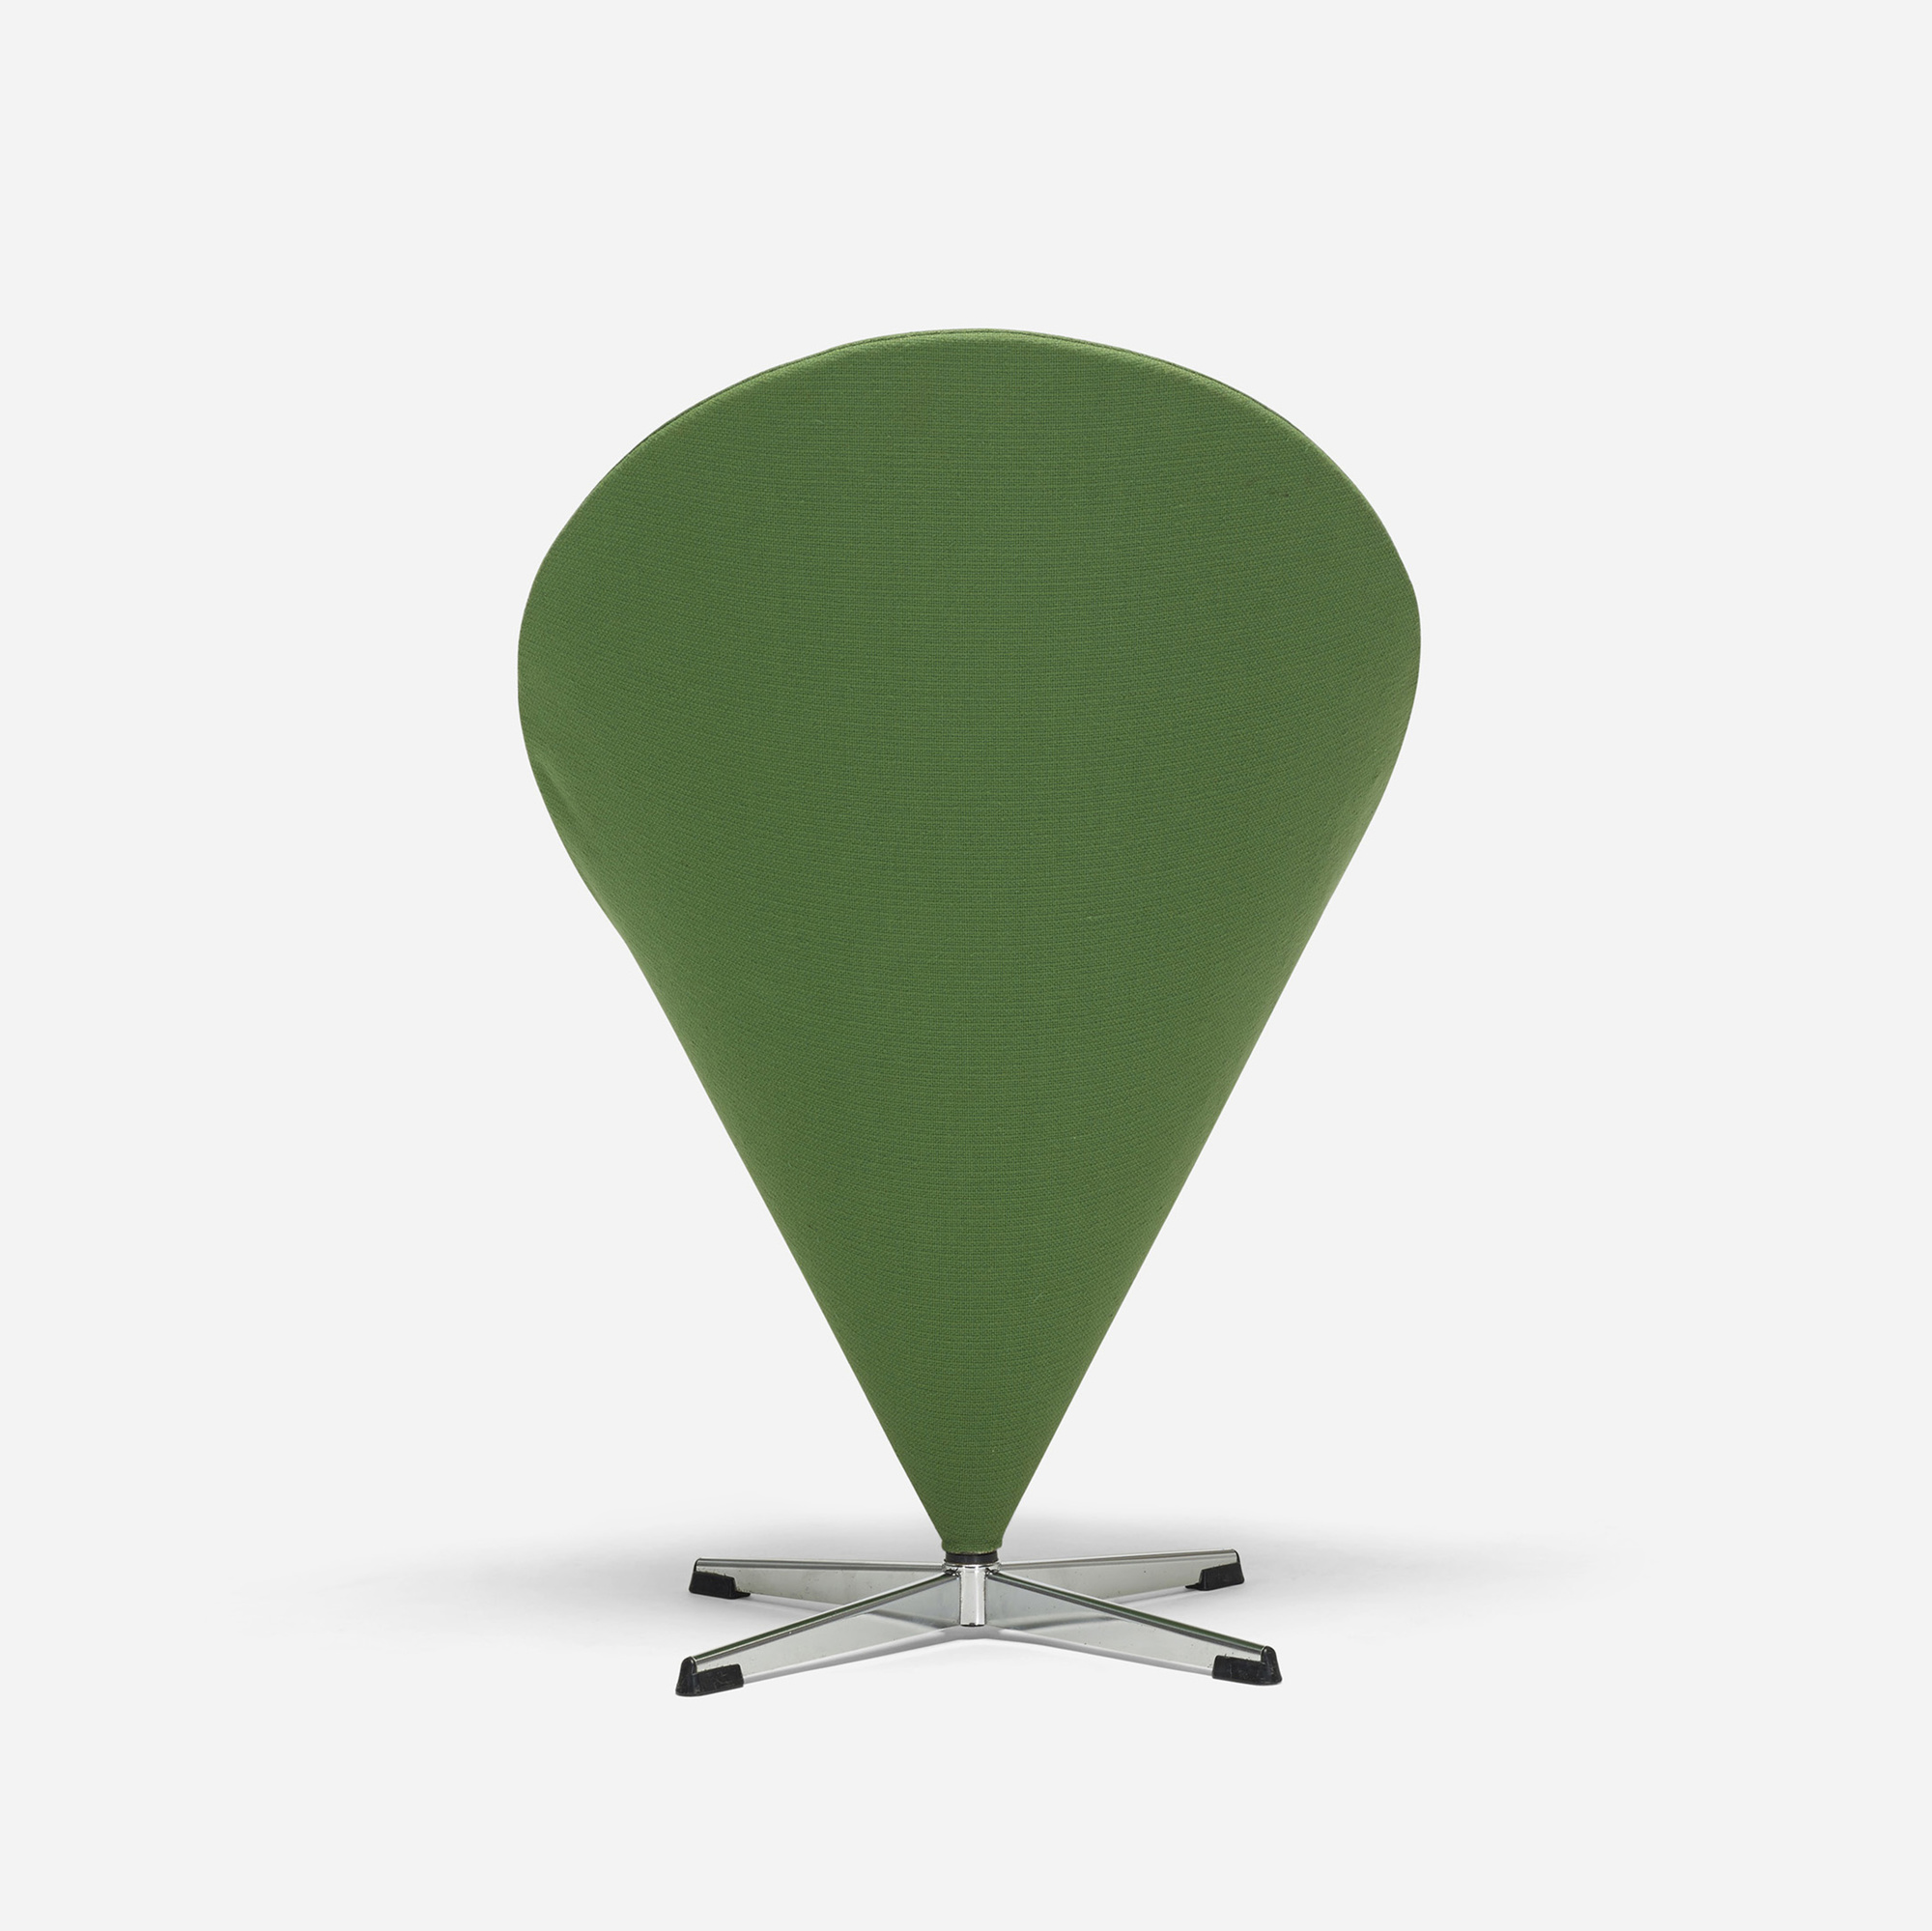 649: Verner Panton / Cone chair (3 of 4)